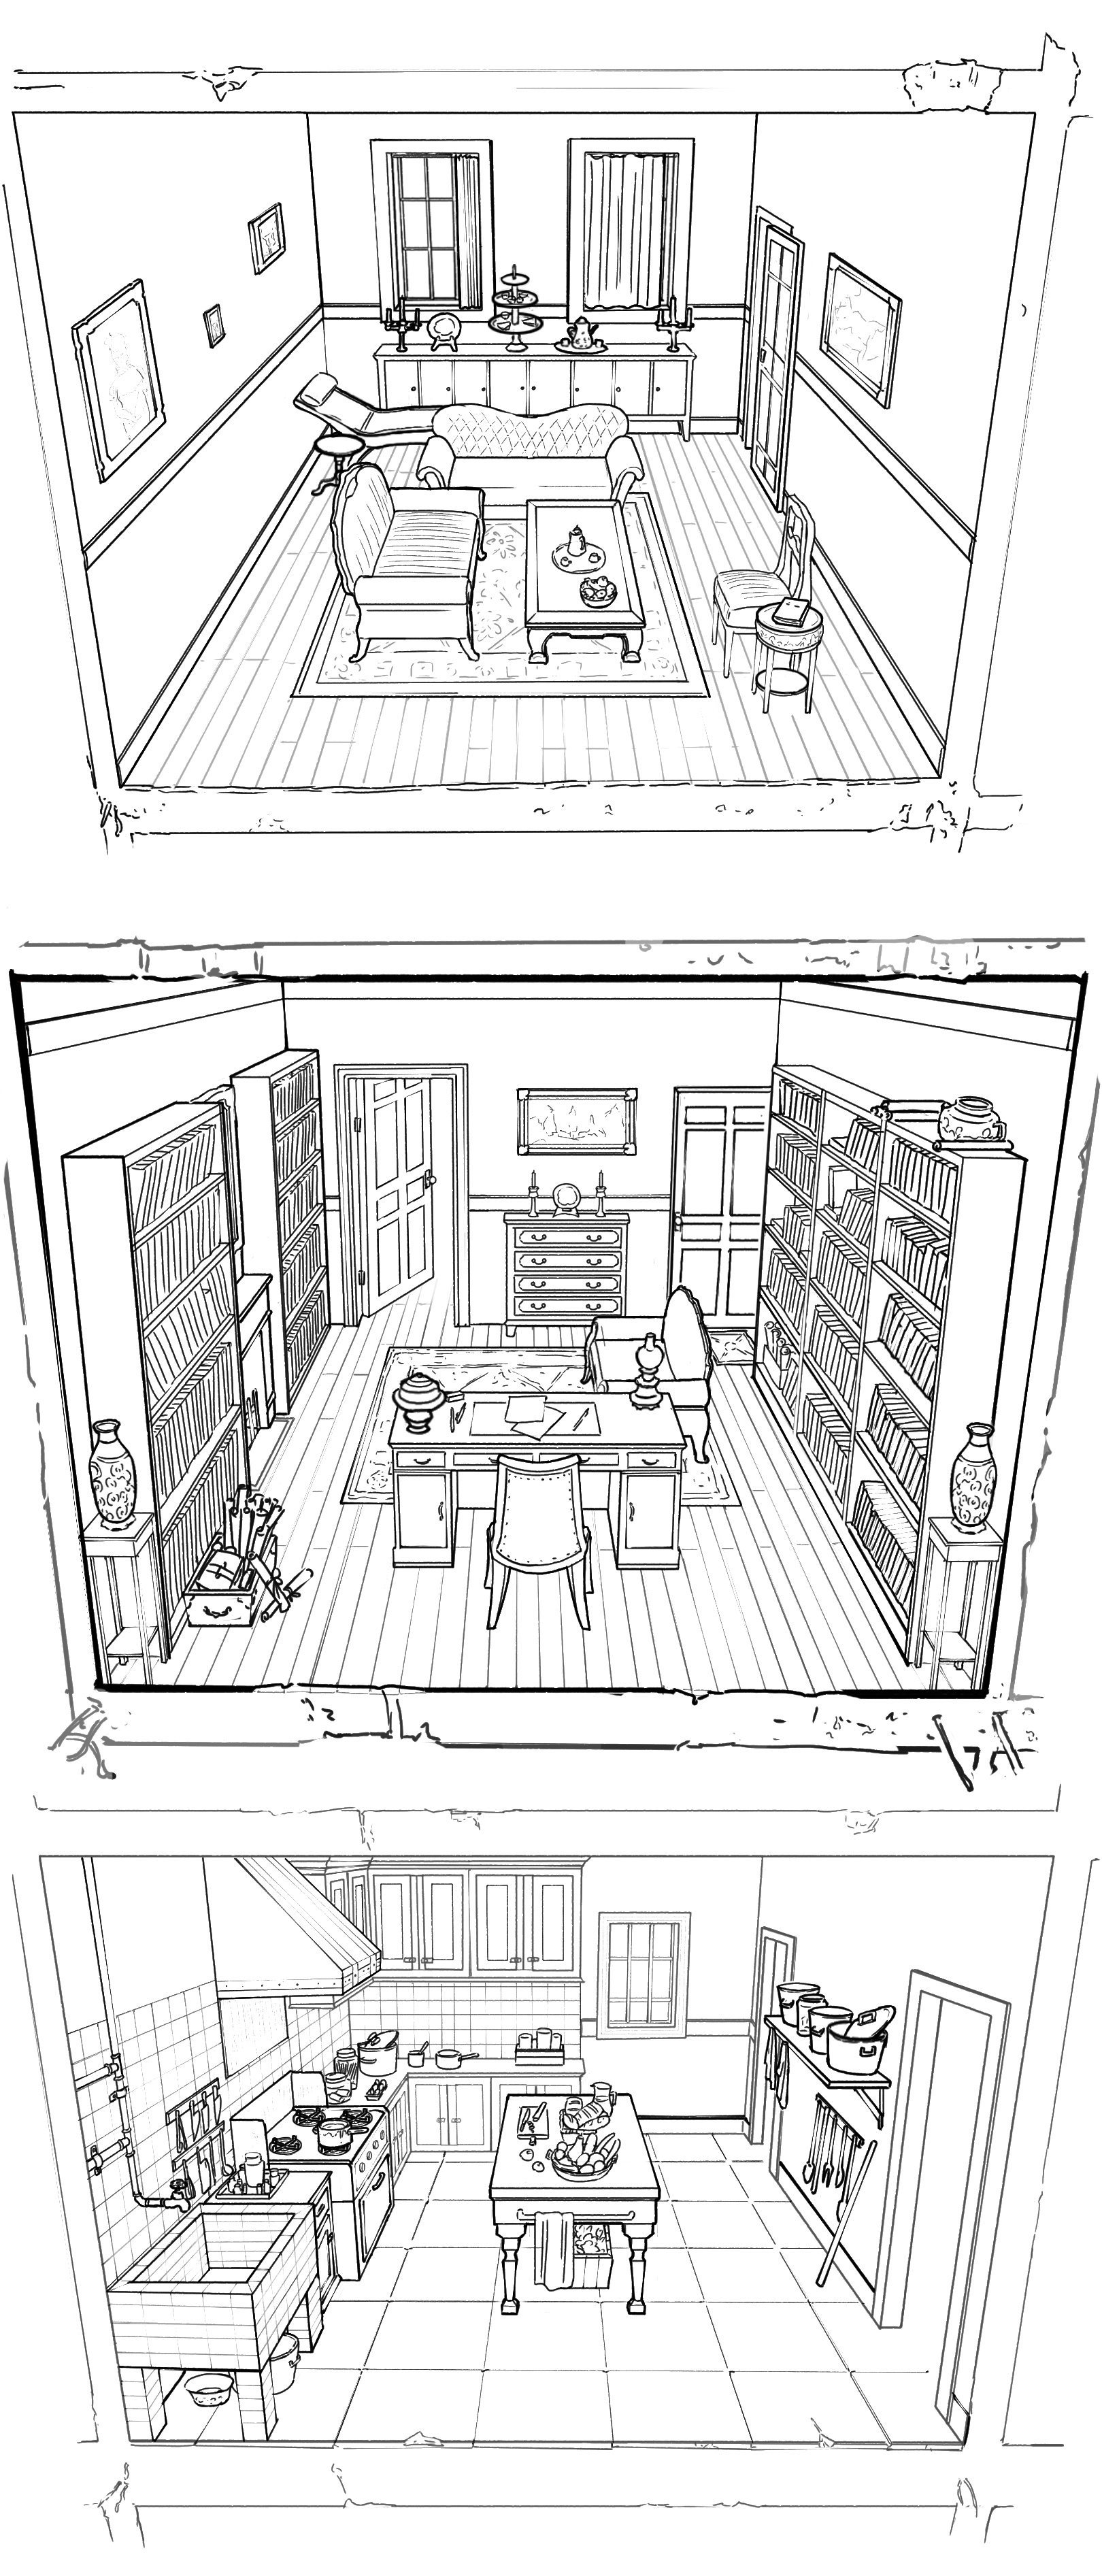 Project: Lucha, Doctor's apartment